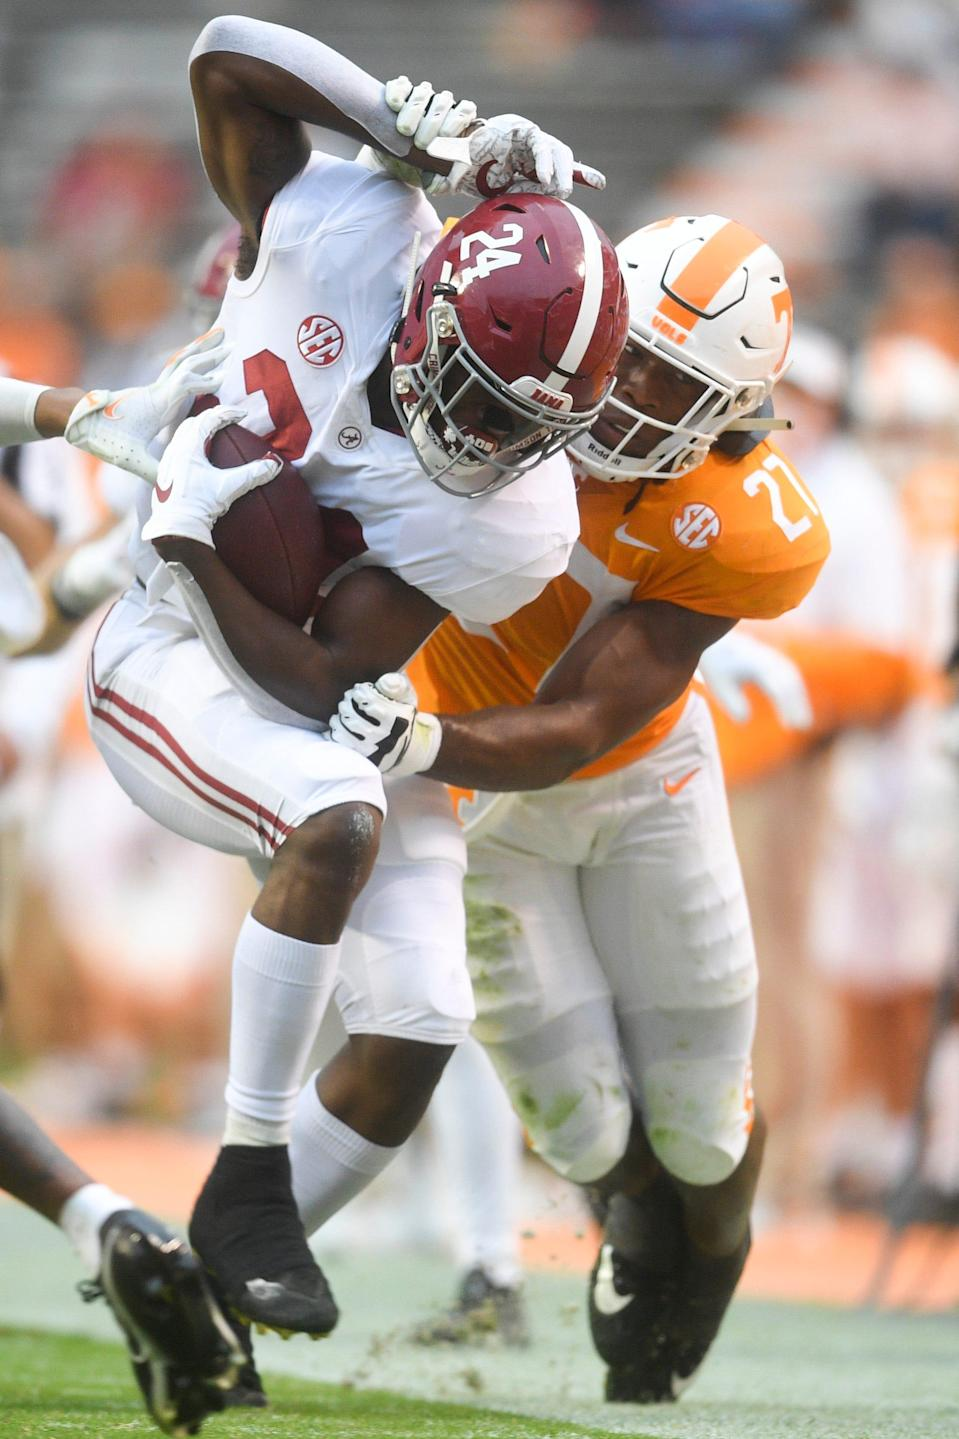 Alabama running back Trey Sanders (24) is tackled by Tennessee linebacker Quavaris Crouch (27) in the third quarter in the second half during a game between Alabama and Tennessee at Neyland Stadium in Knoxville, Tenn. on Saturday, Oct. 24, 2020.